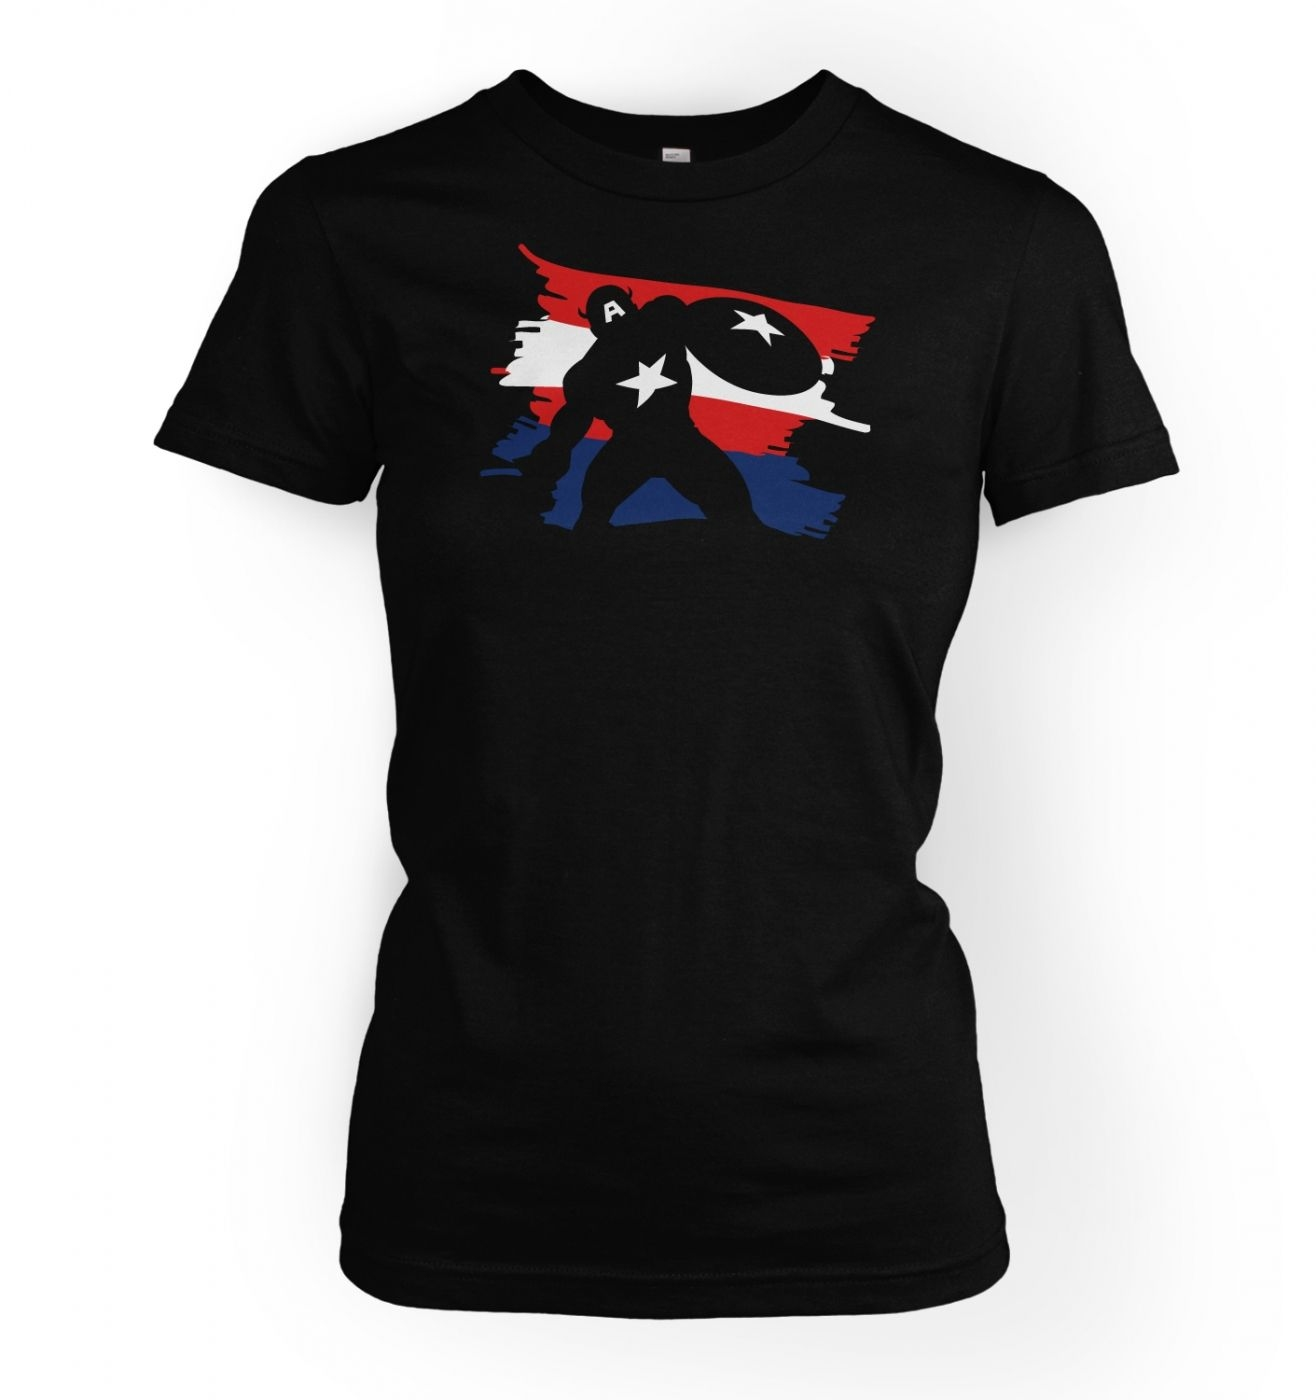 The Captain Womens T-shirt Inspired by Captain America & The Avengers